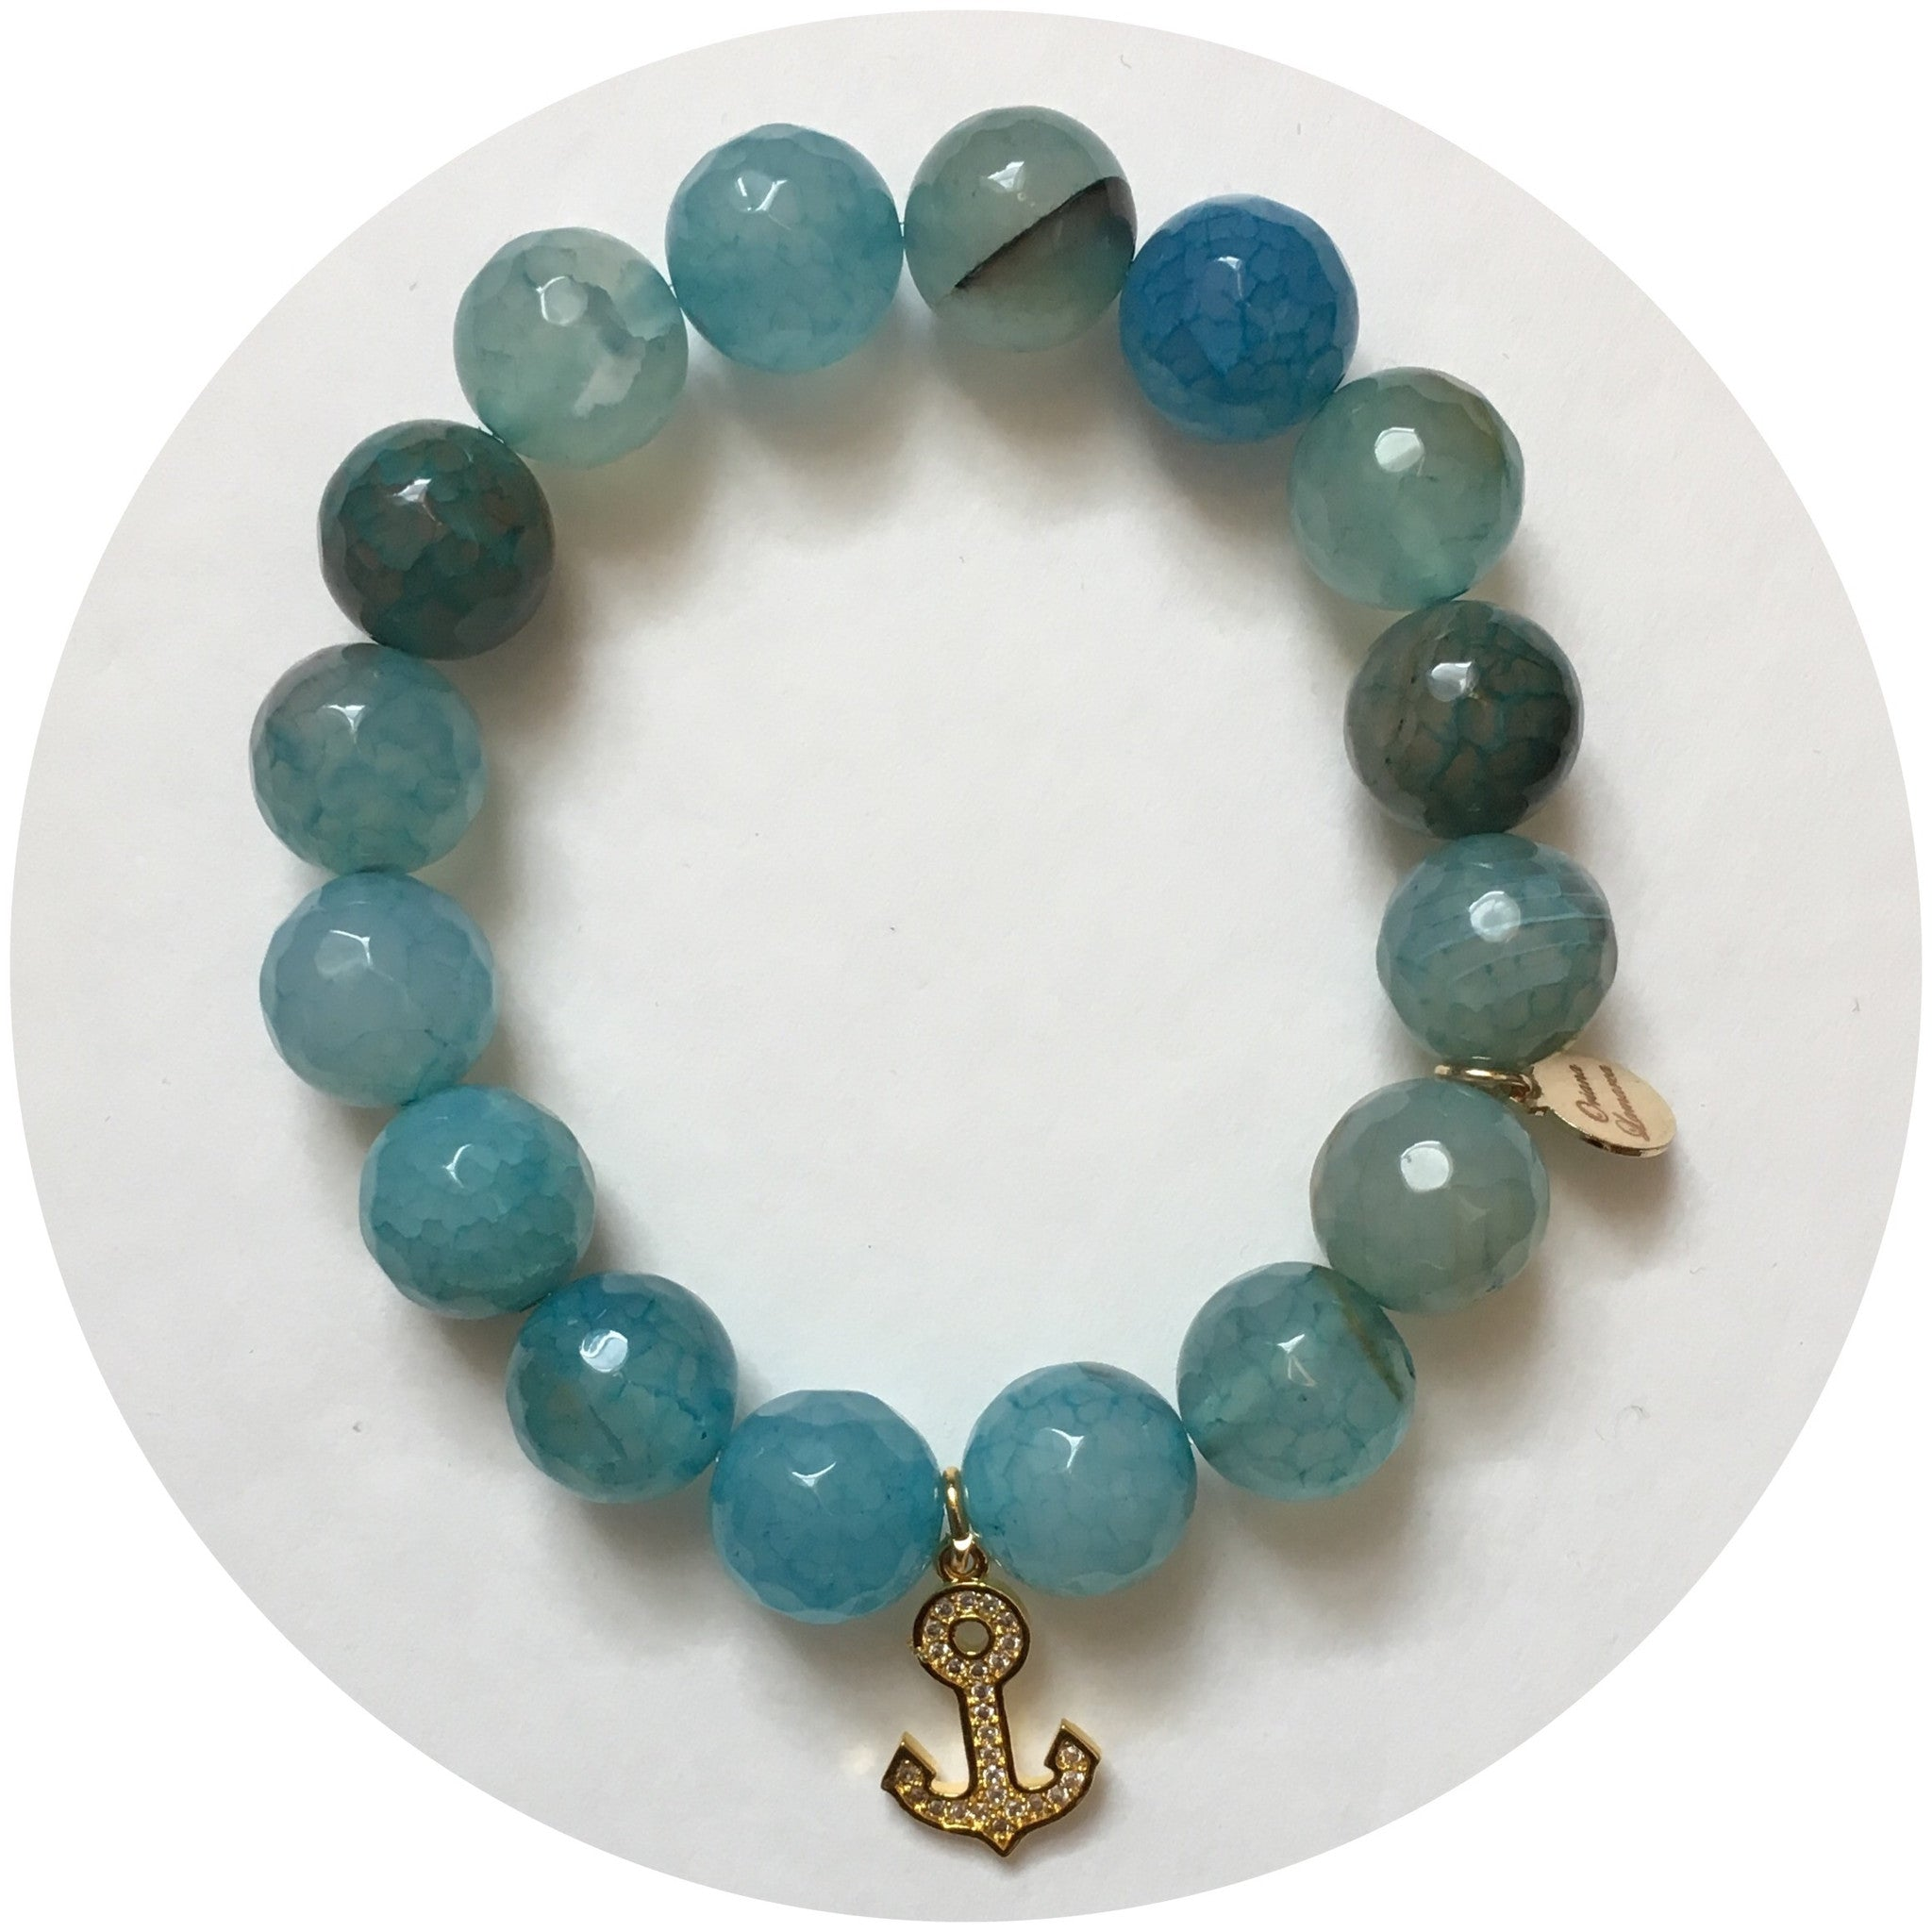 Paulette's C of Blue Fire Agate with Pavé Gold Anchor Pendant - Oriana Lamarca LLC